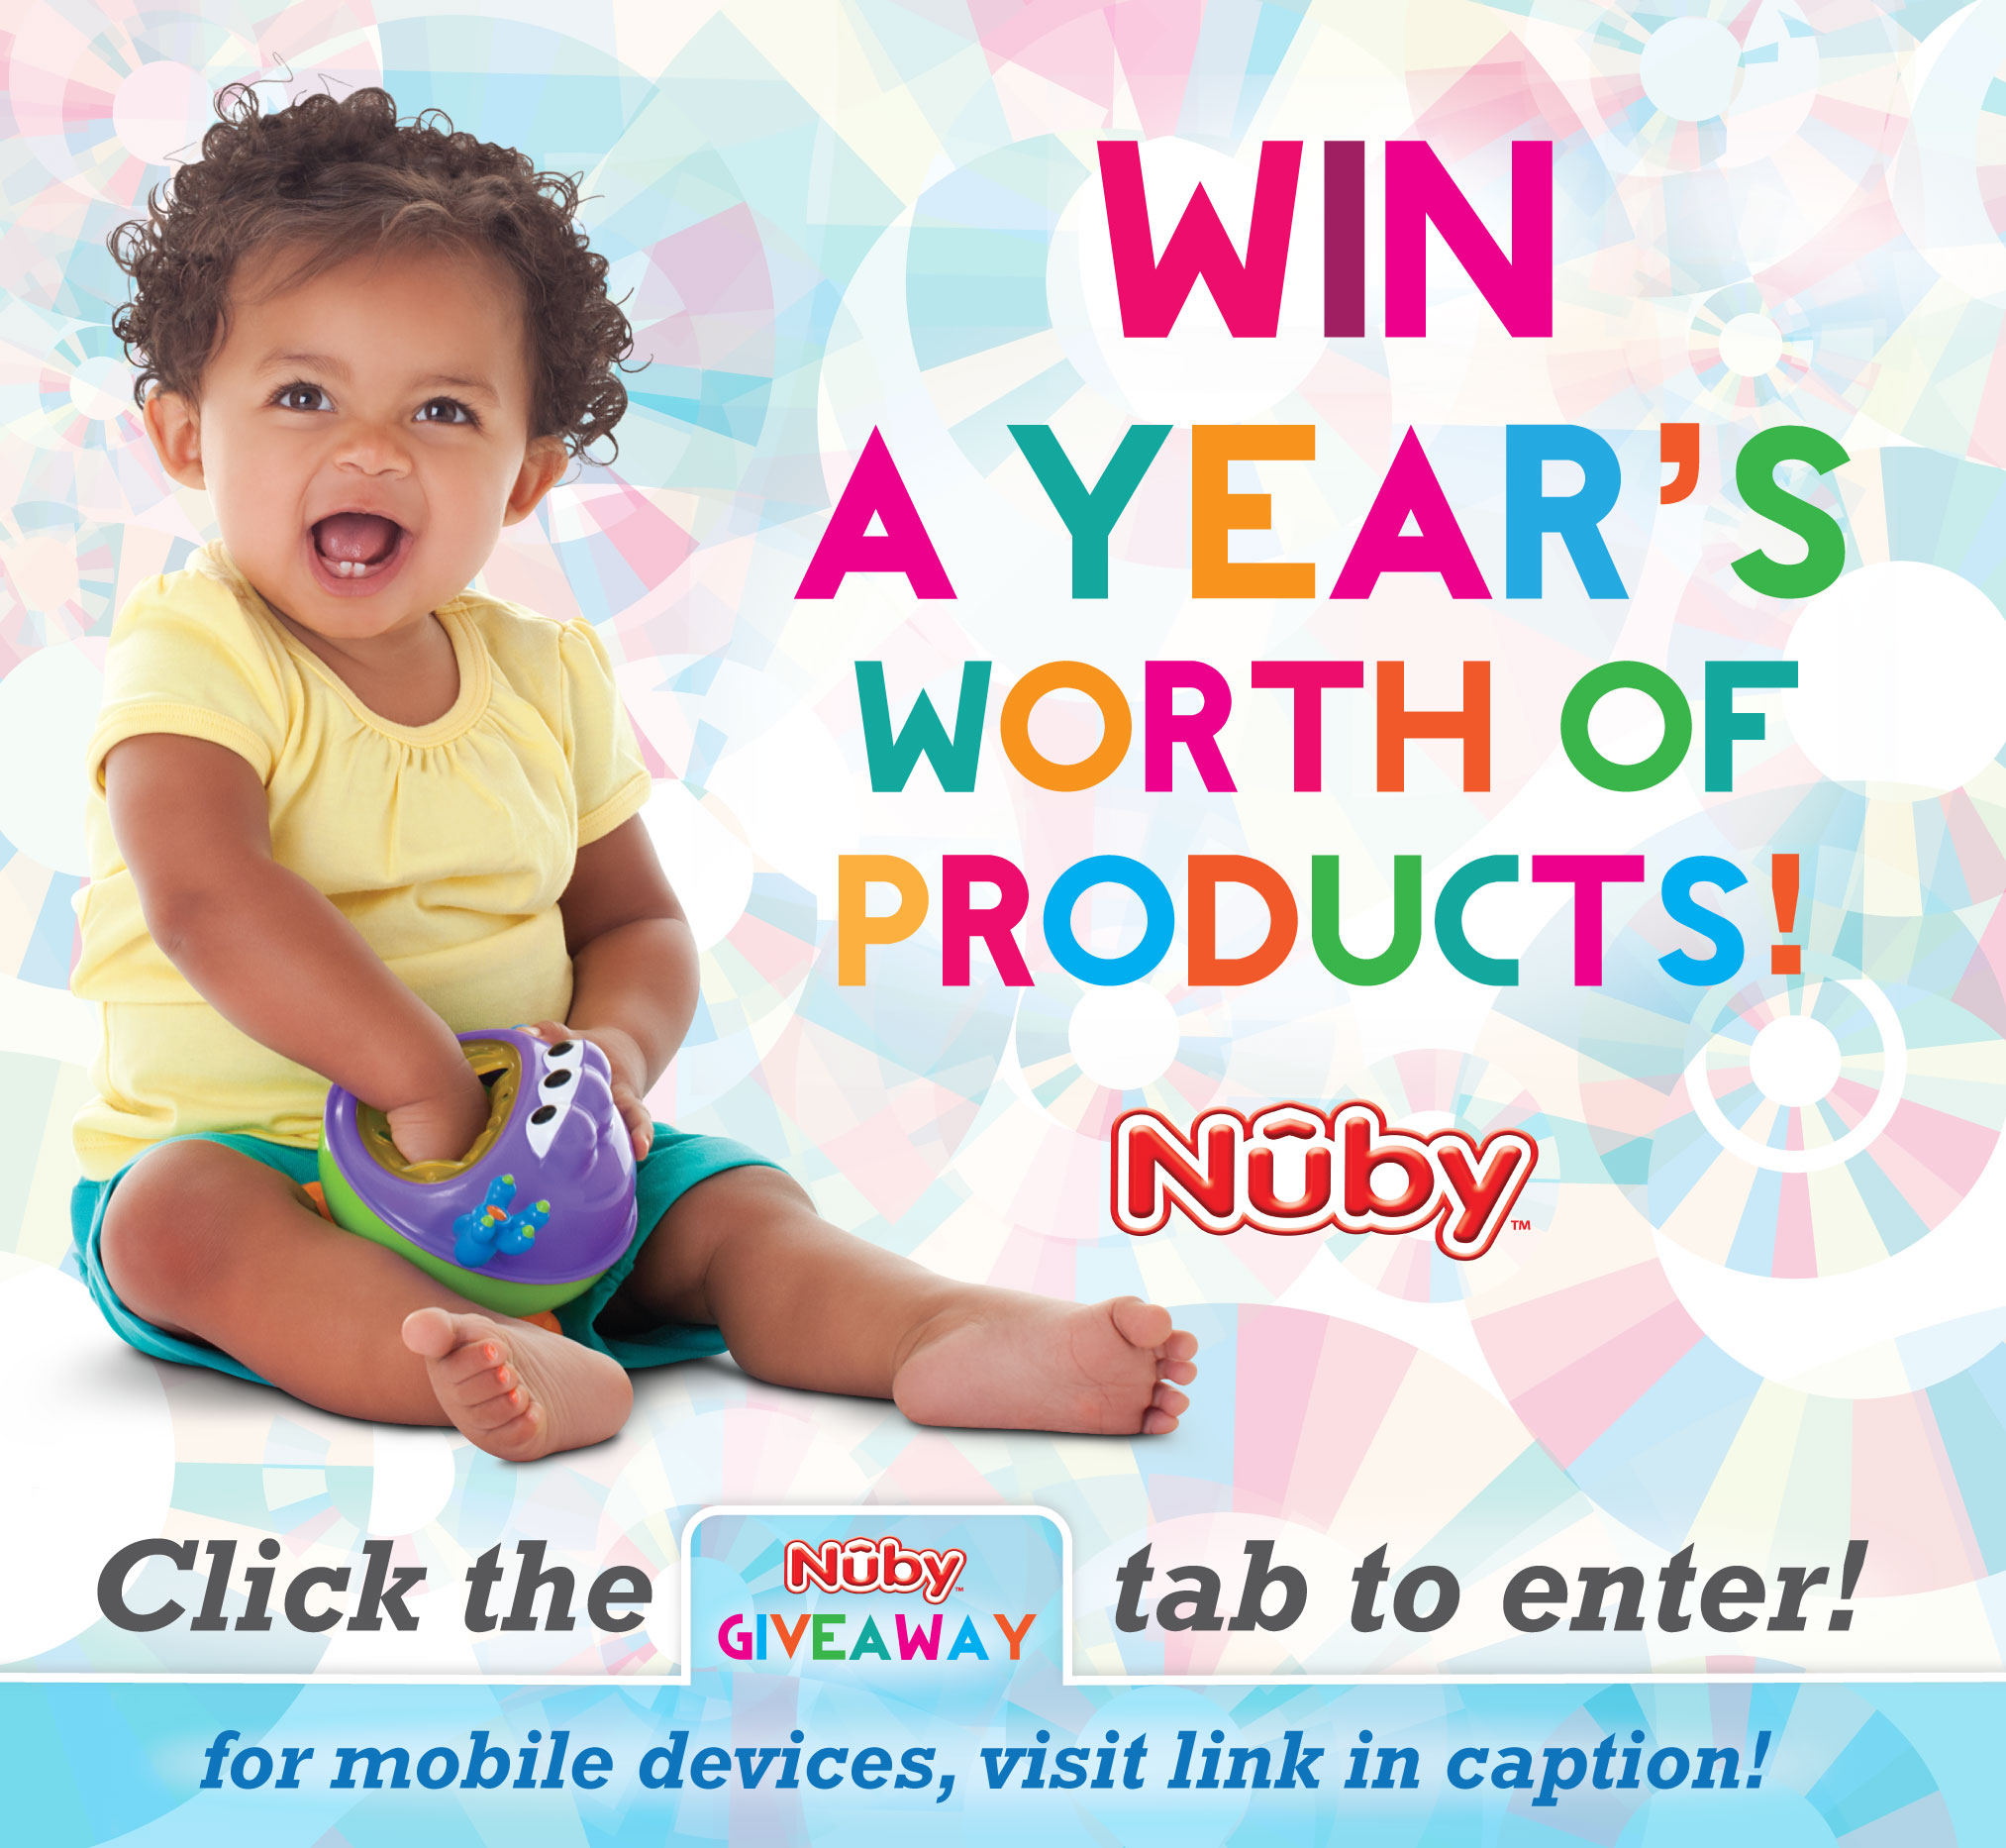 Nuby years worth facebookgraphic Win Nuby baby products!